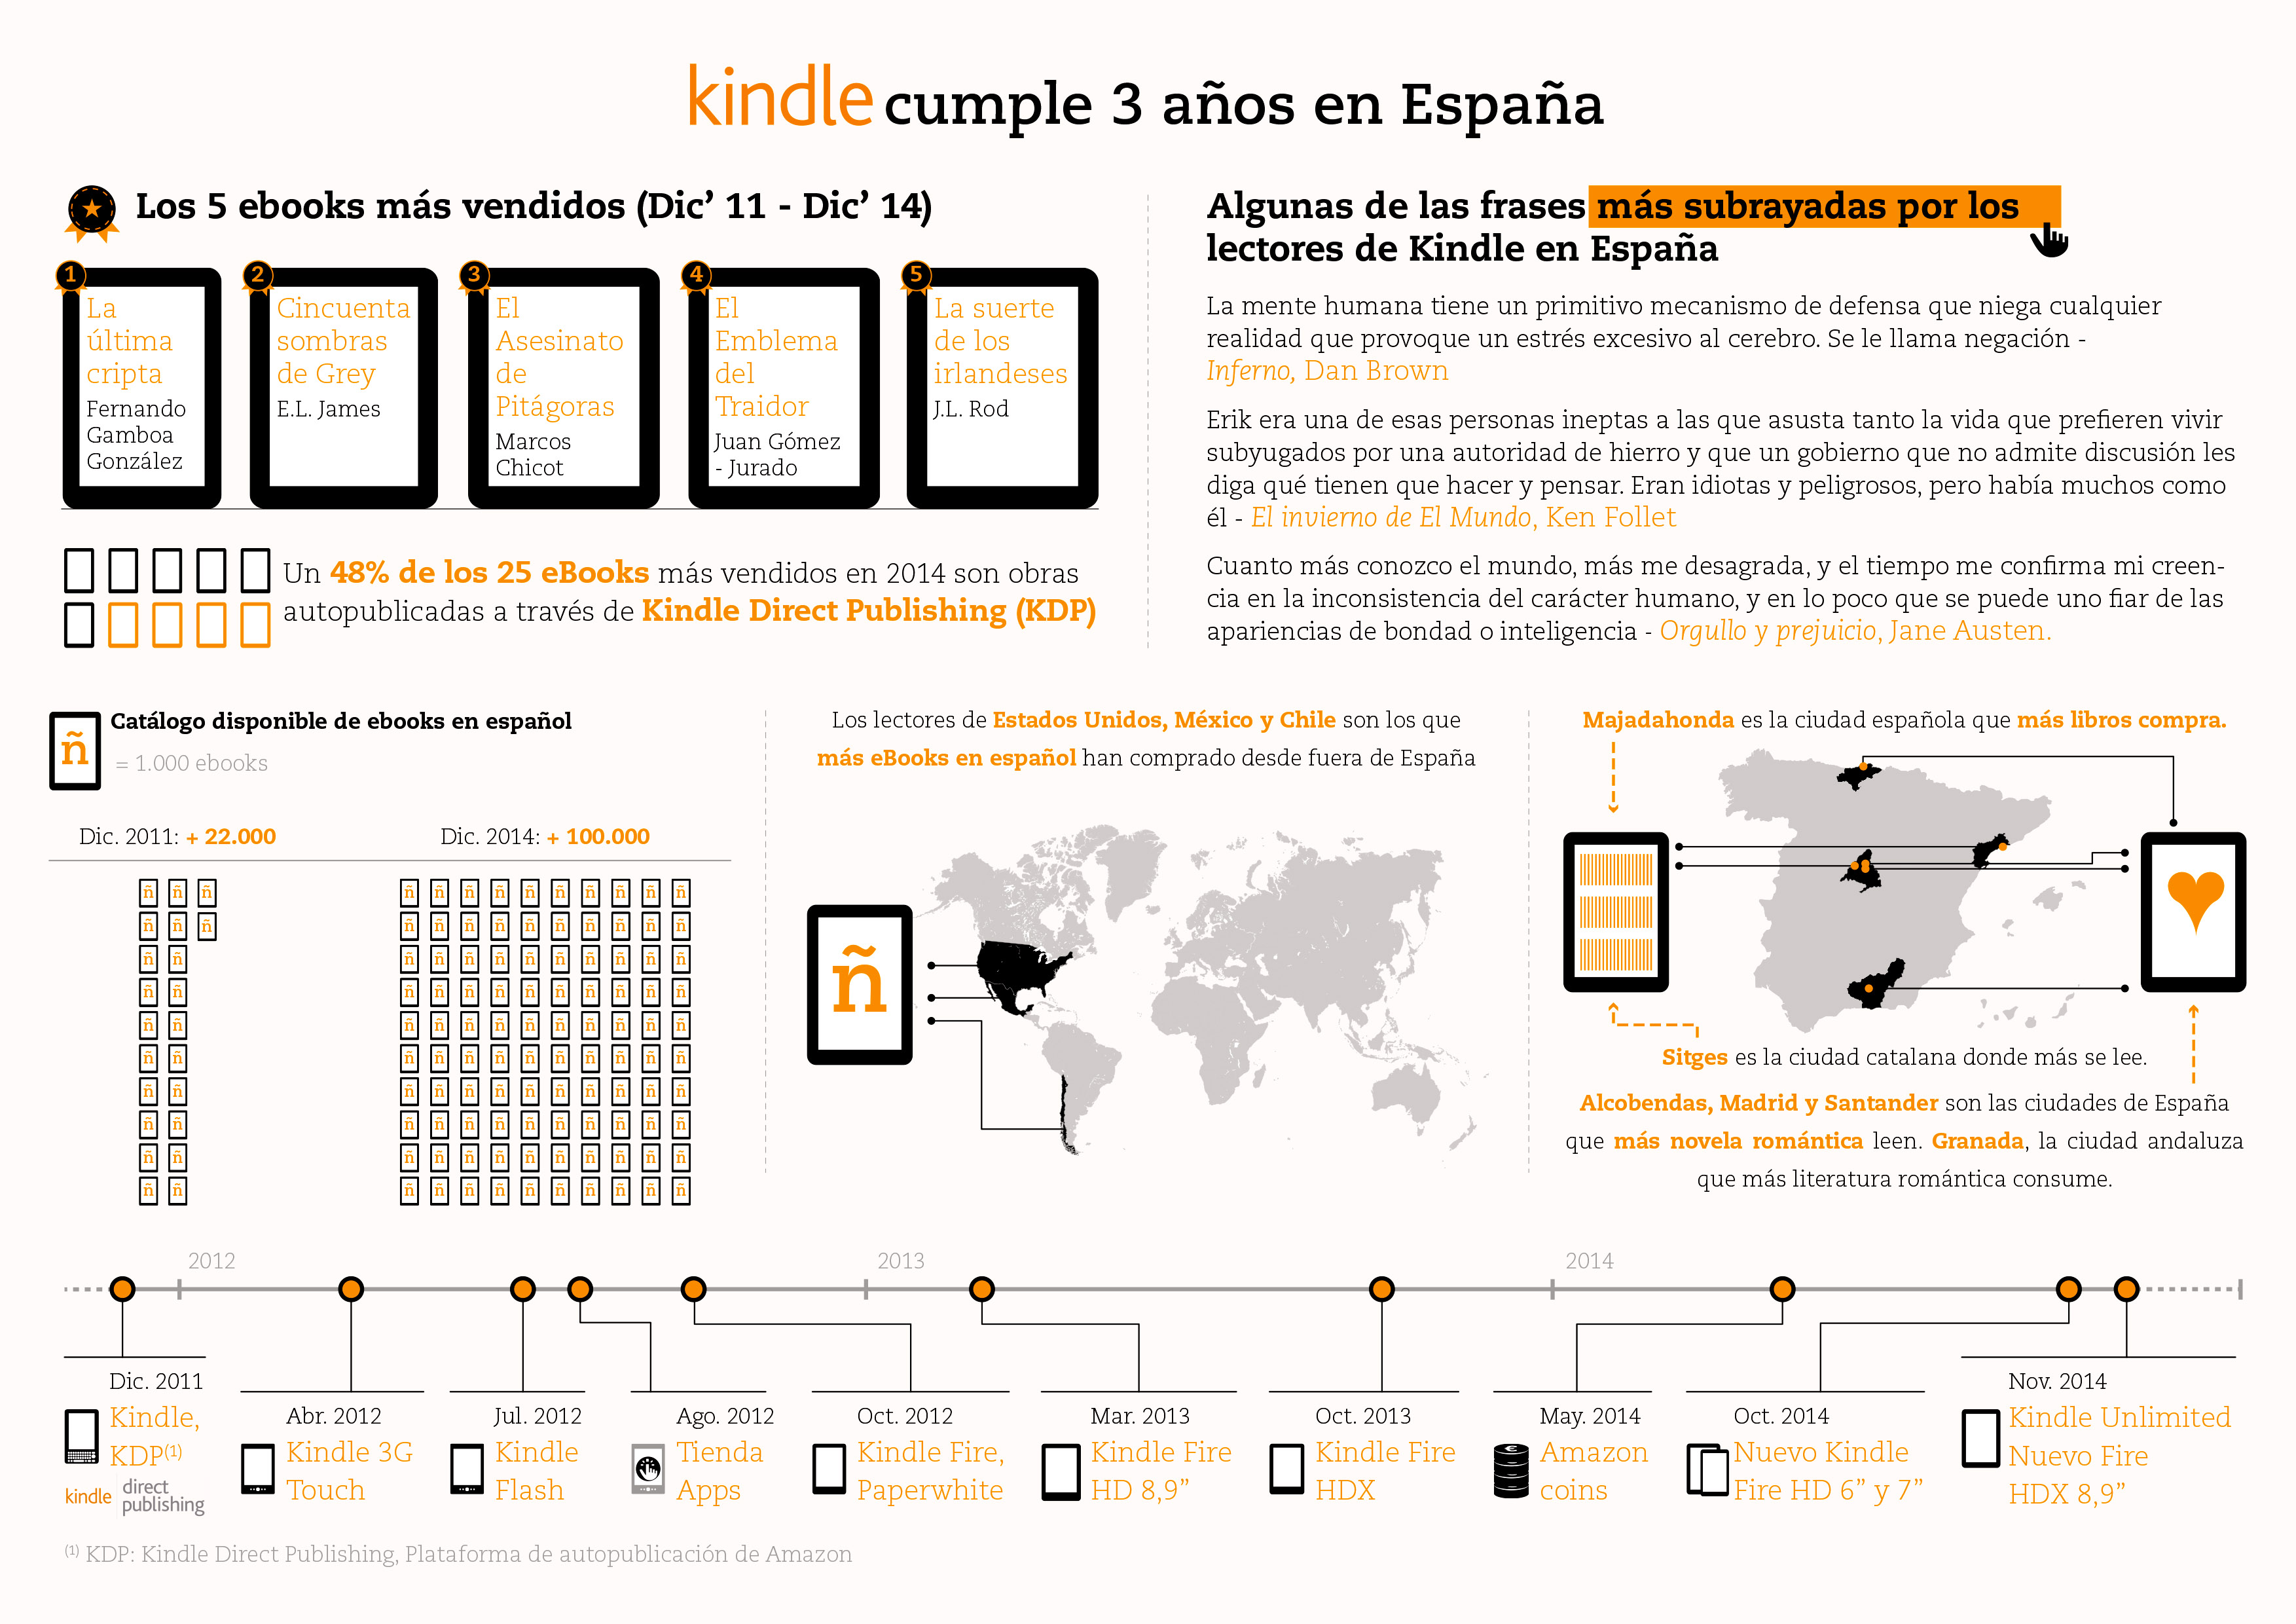 Base Datos Libros Editados España 20141202 Cronologia Kindle Normal Teknófilo